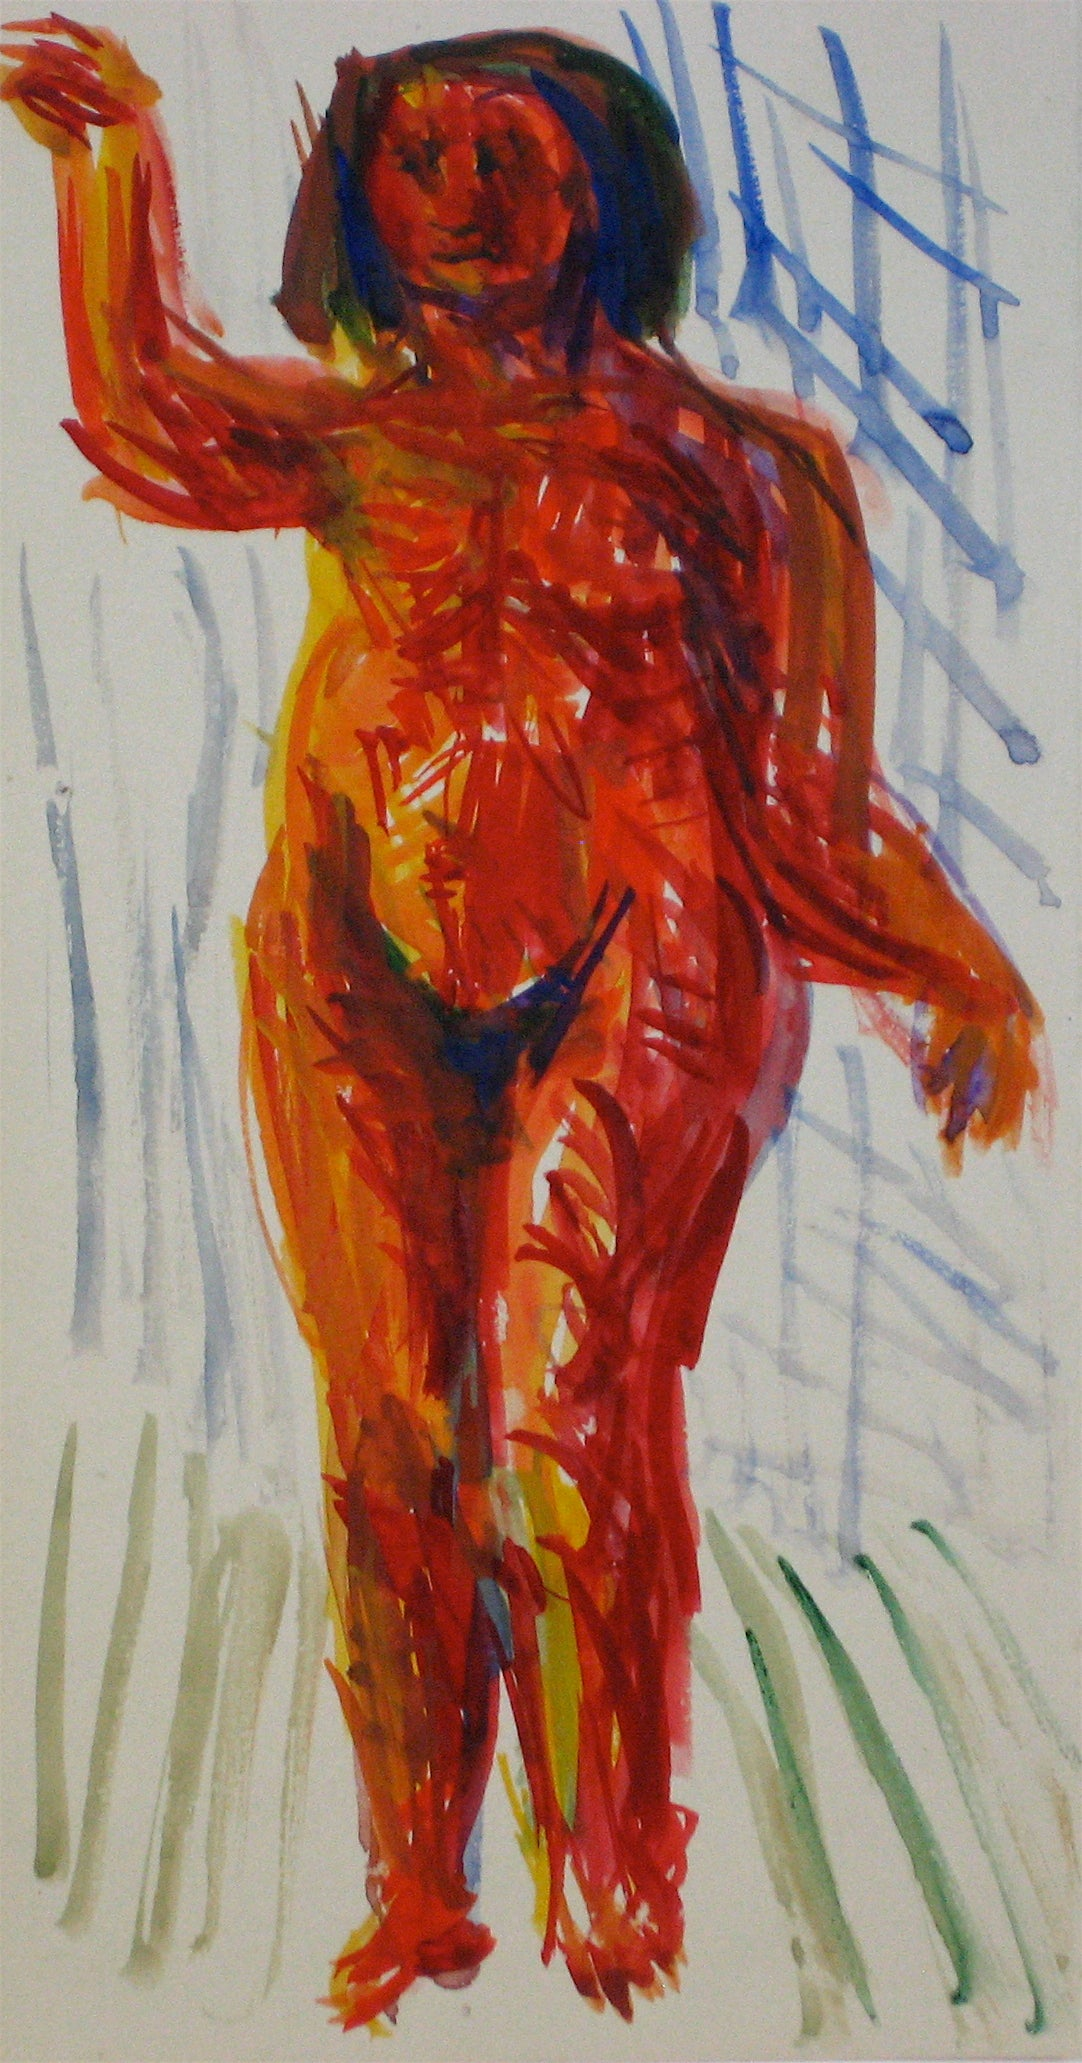 Colorful Expressionist Figure Abstract in Red<br>Early 20th Century Watercolor<br><br>#11253